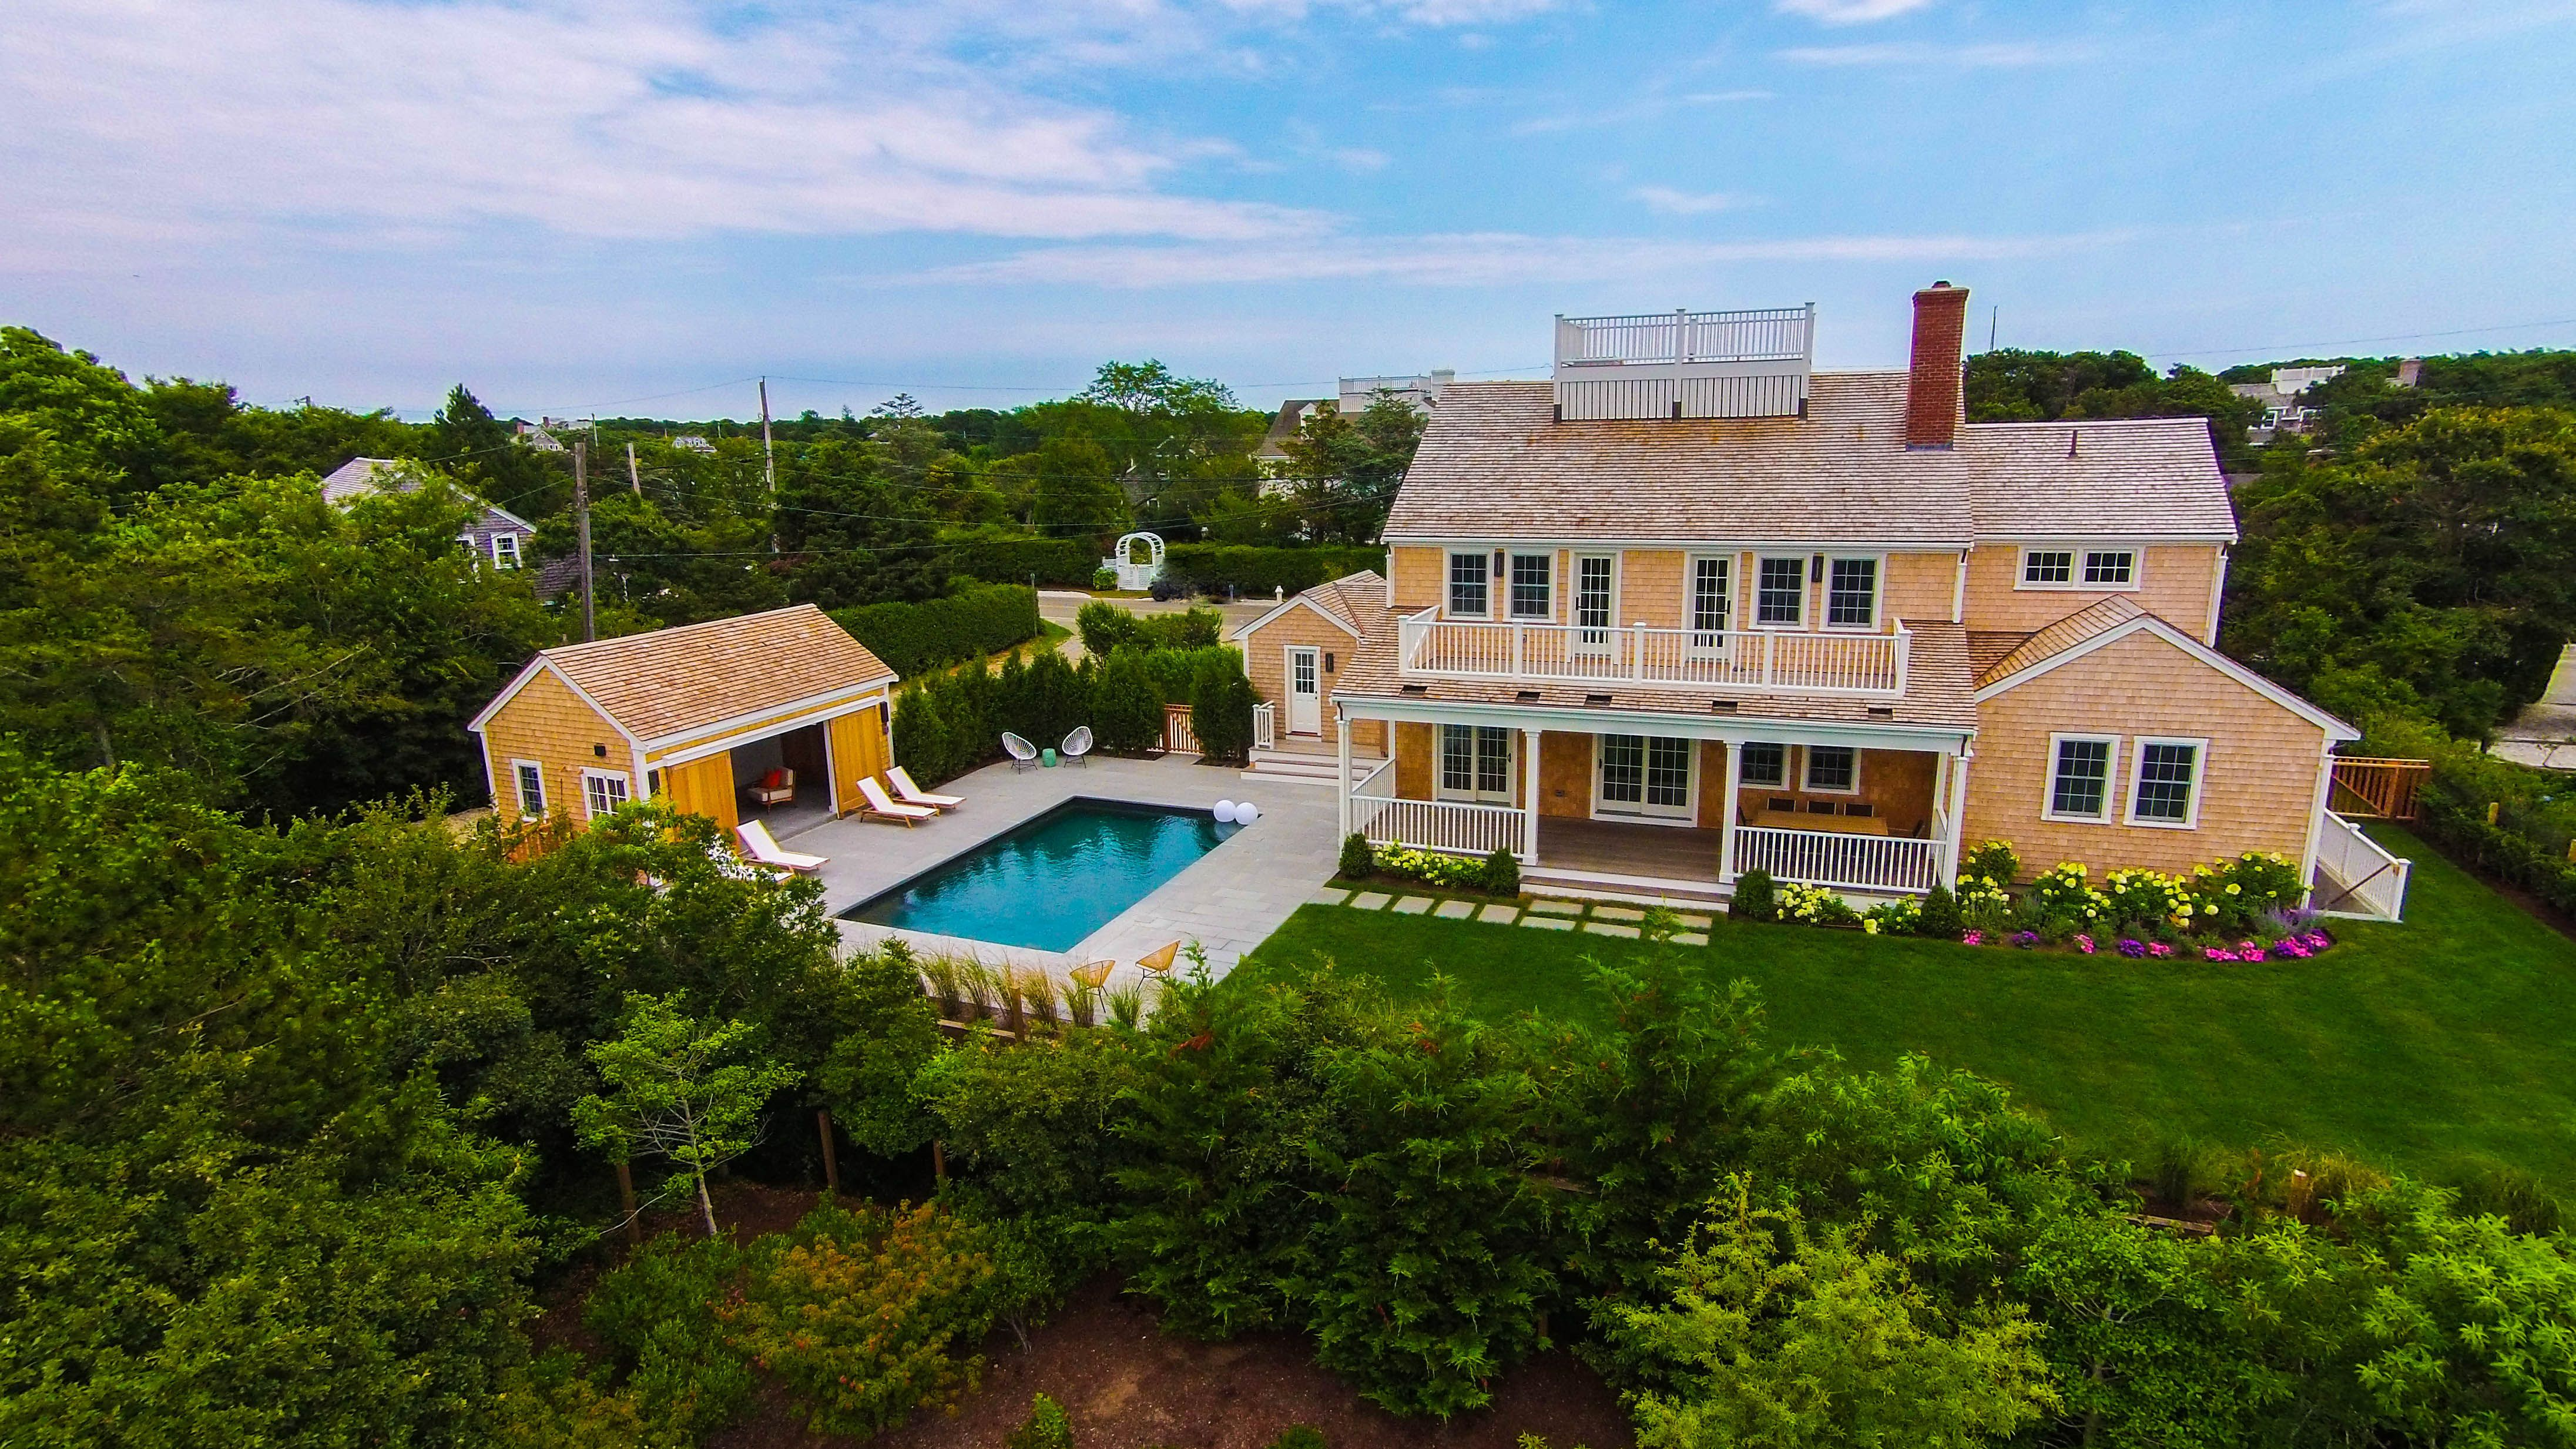 roads cottage is sale of center photo click village pond middle for views located near nantucket cottagesforsale the cottages larger between forsale and